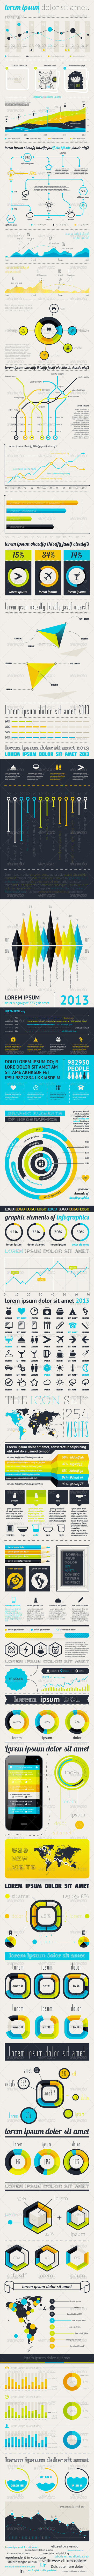 GraphicRiver Elements of Infographics with Buttons and Menus 3945932